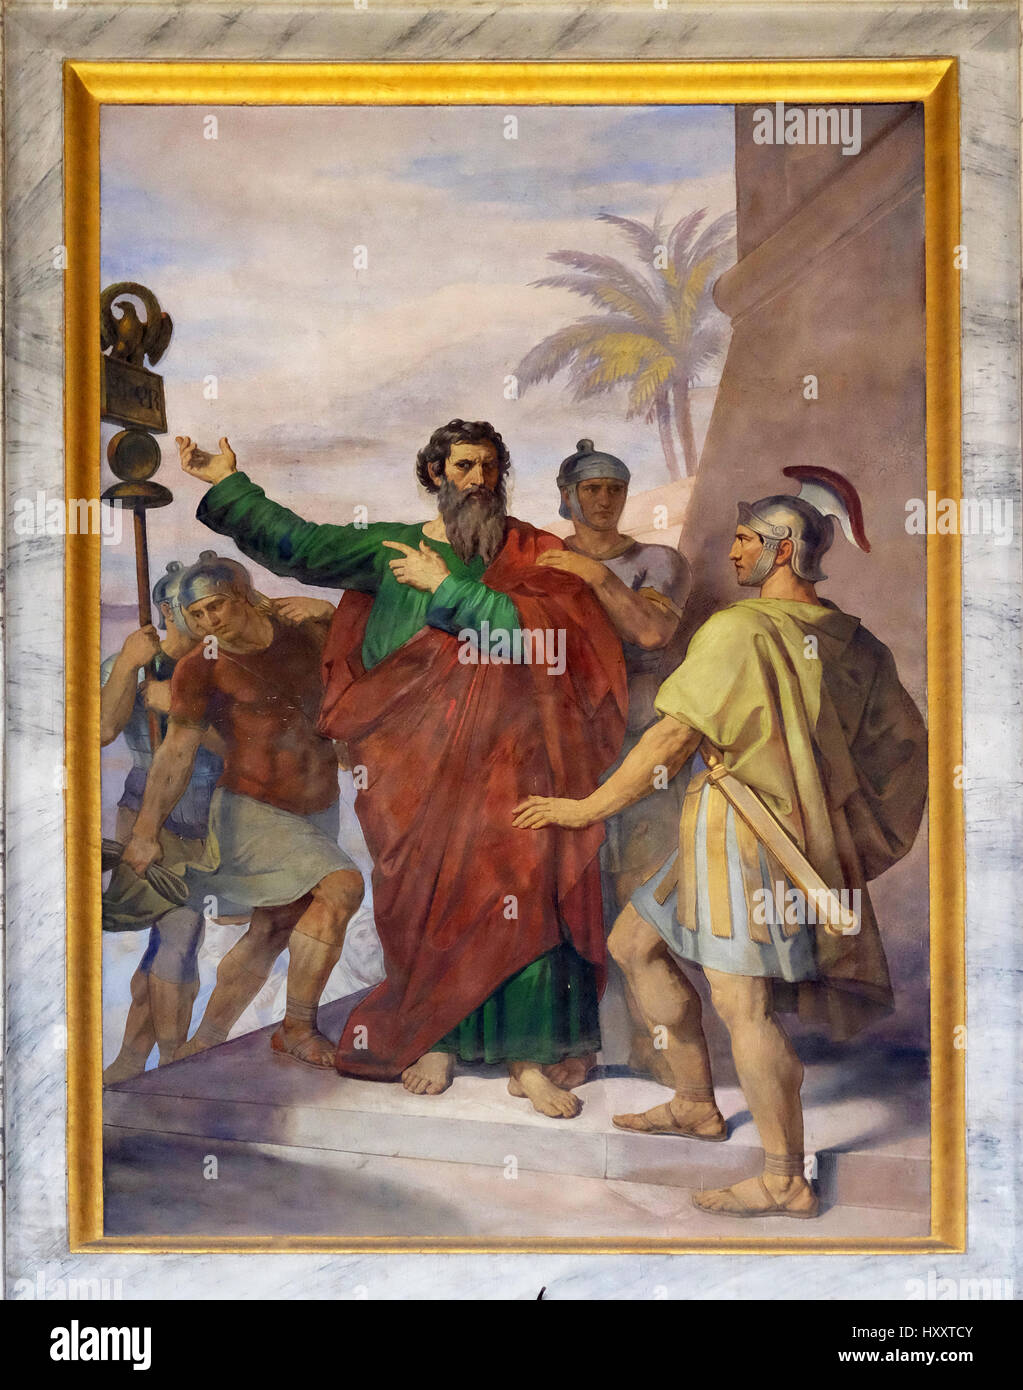 The fresco with the image of the life of St. Paul: Paul is Sent to Rome, basilica of Saint Paul Outside the Walls, - Stock Image